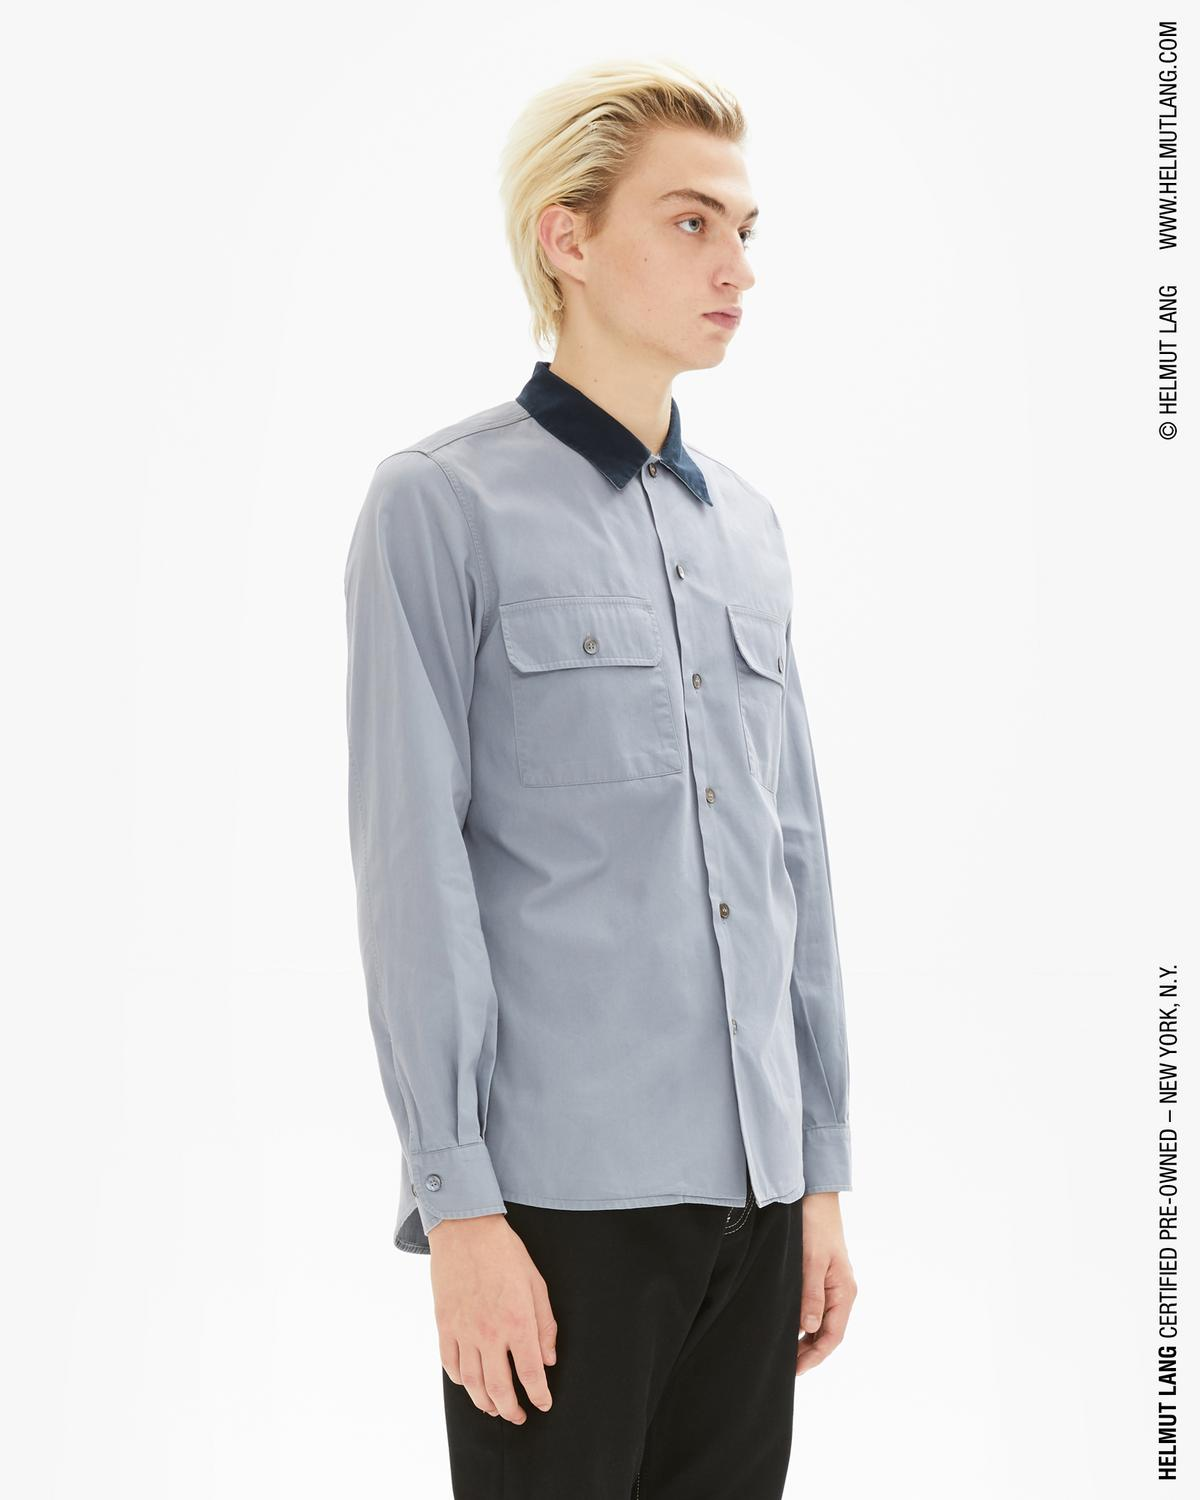 Workwear Shirt with Contast Collar